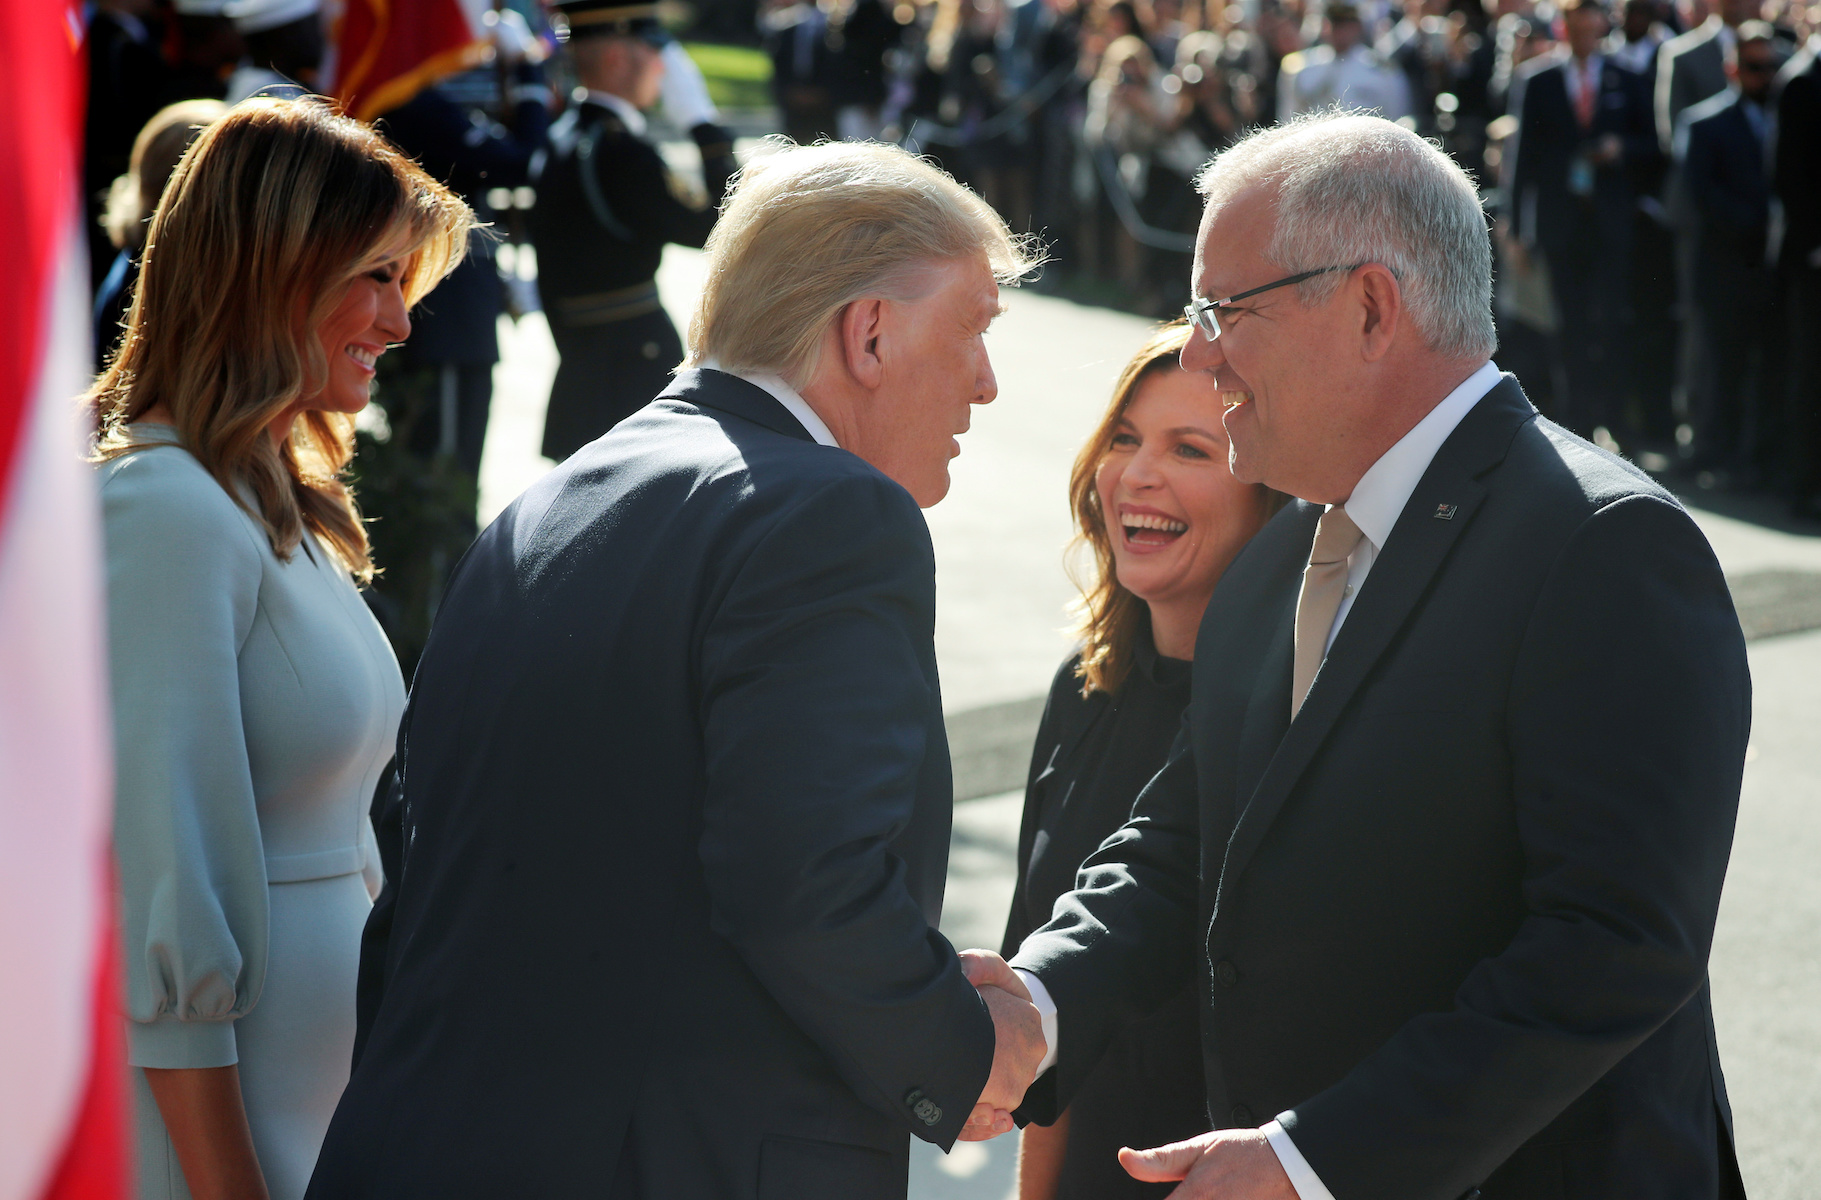 U.S. President Trump welcomes Australia's Prime Minister Morrison at White House arrival ceremony in Washington